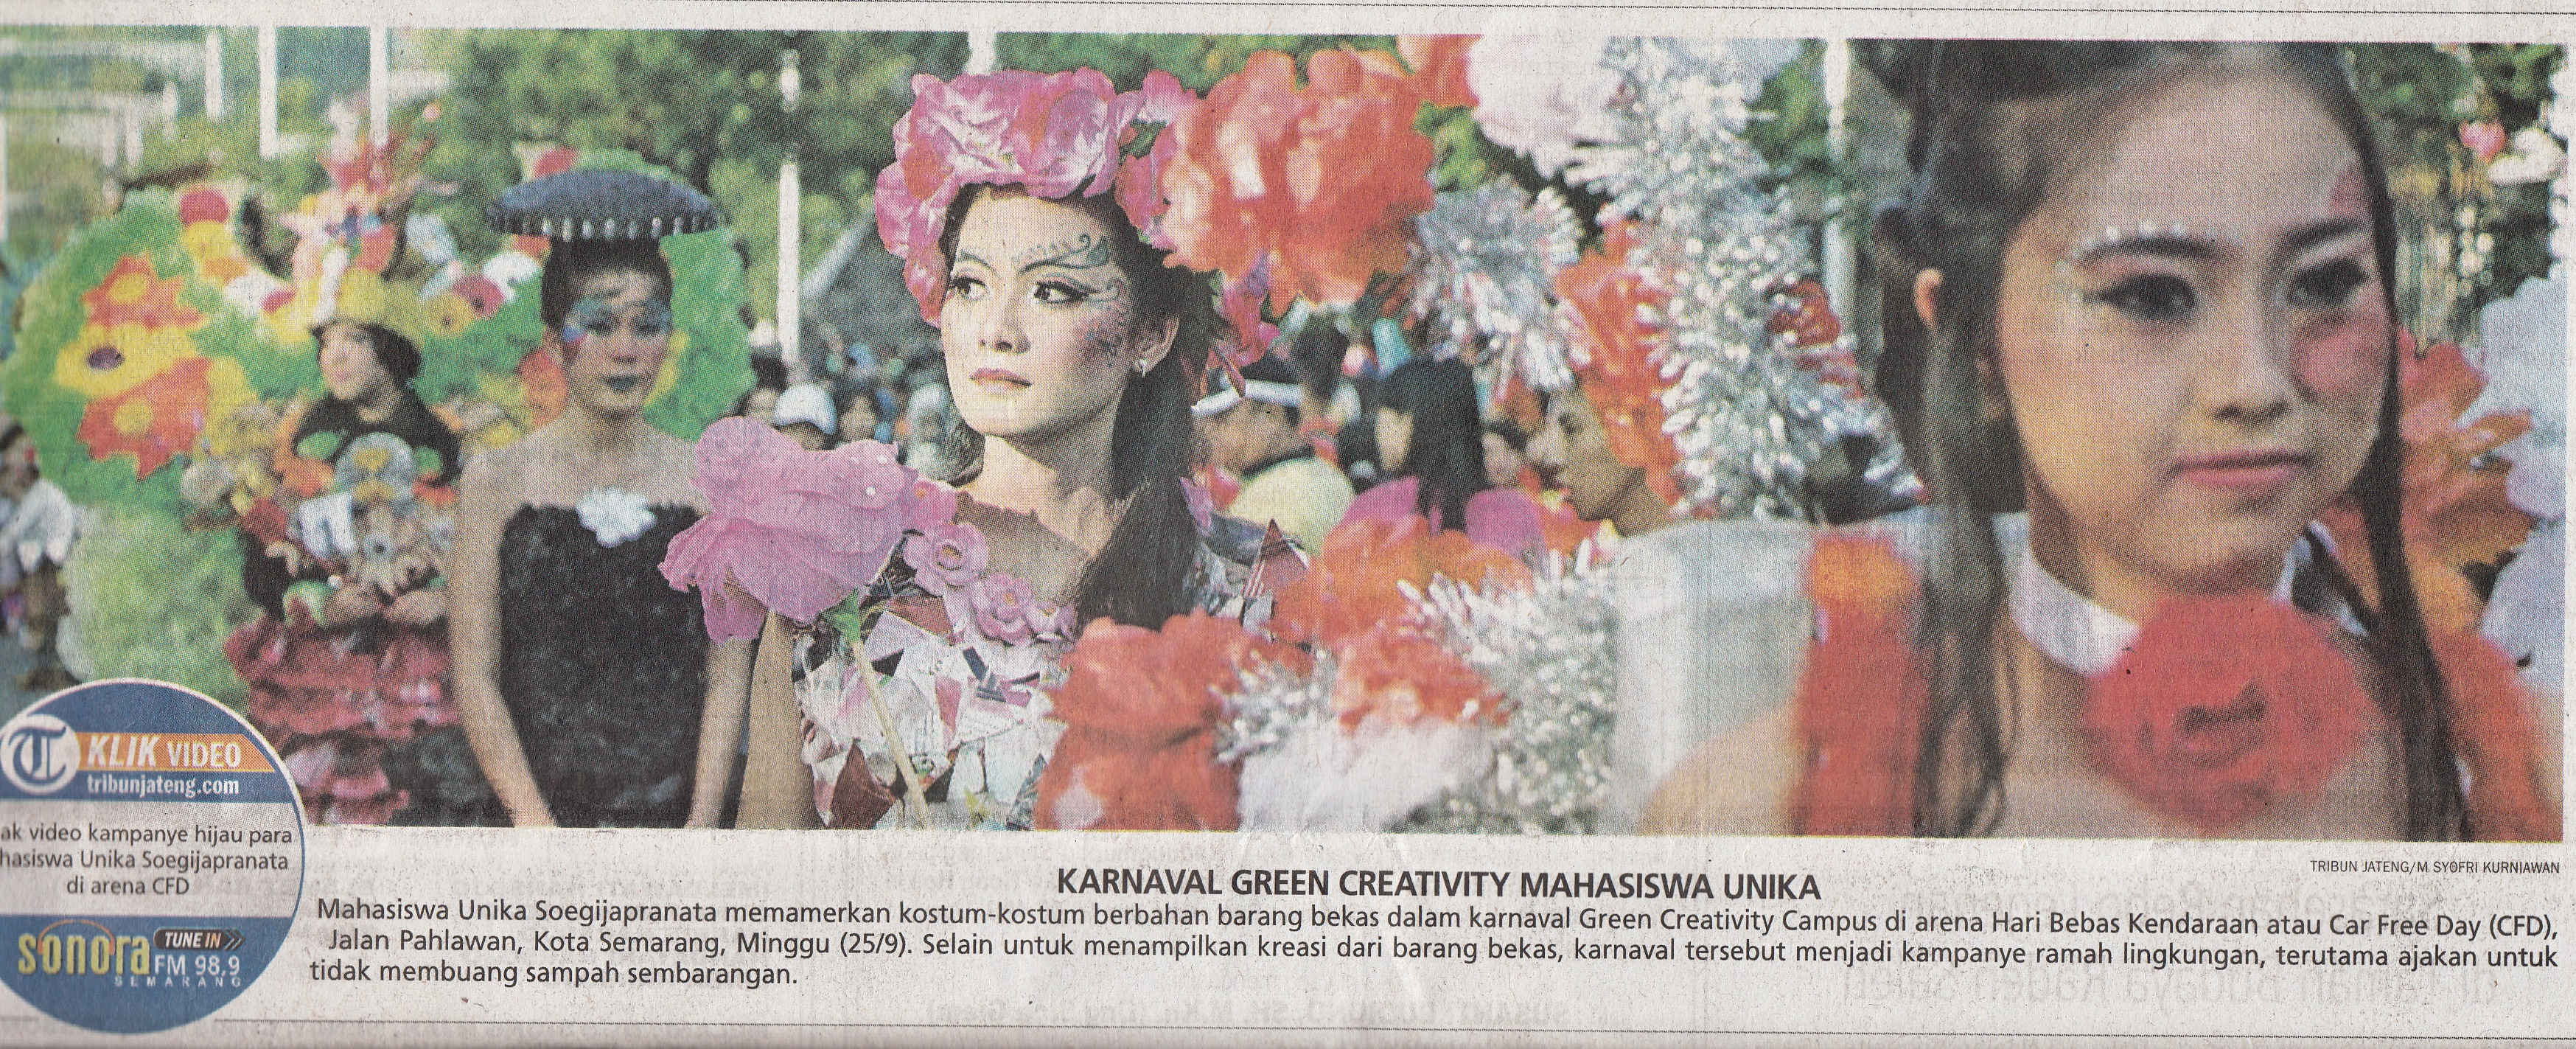 trbj-26_09_2016-karnaval-green-creativity-campus-di-car-free-day